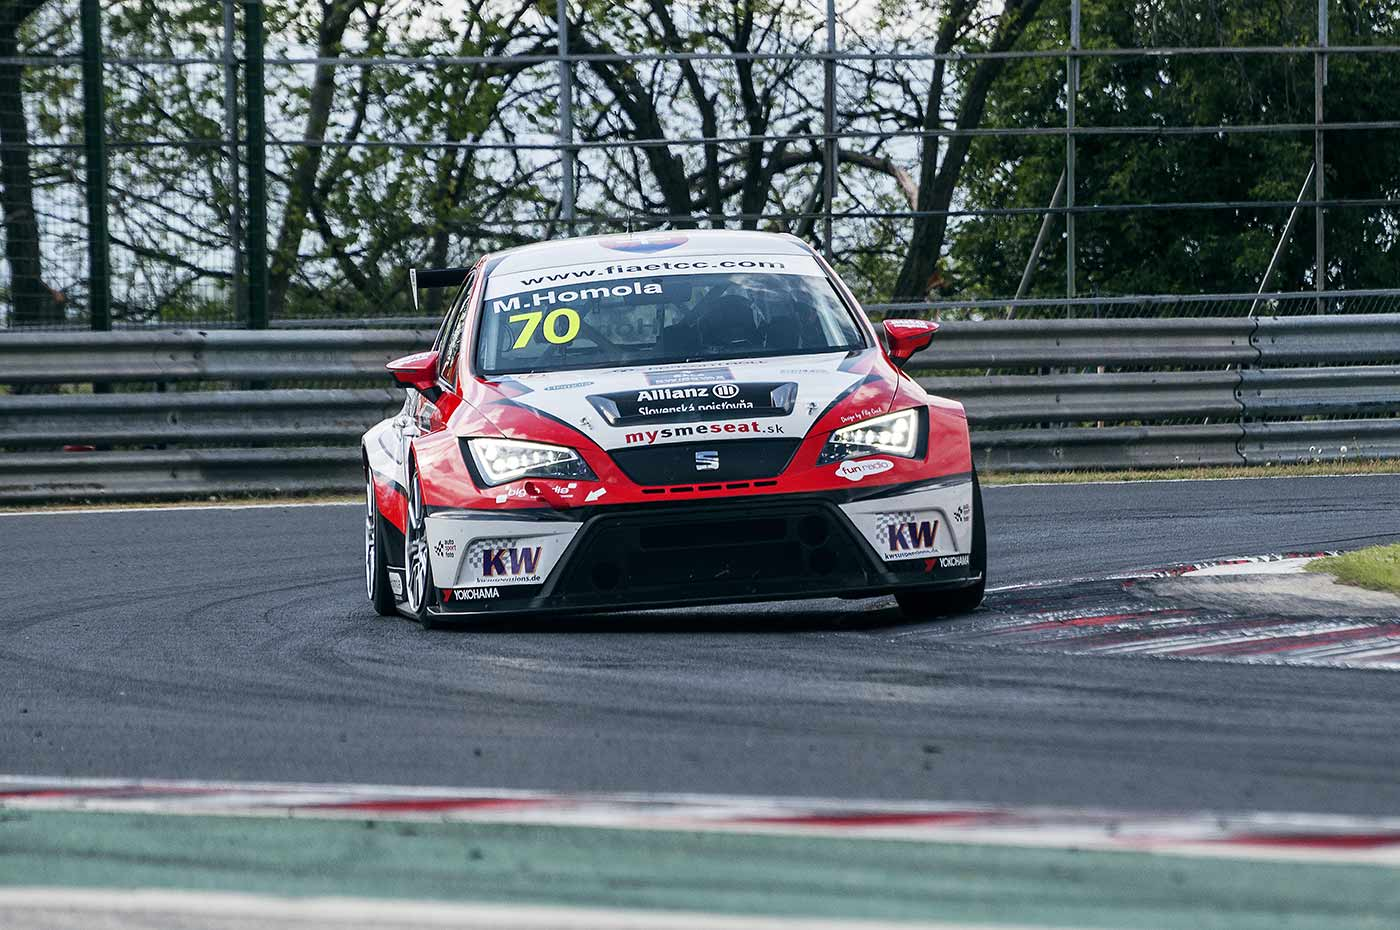 Mato Homola goes big – he joins TCR International Series!